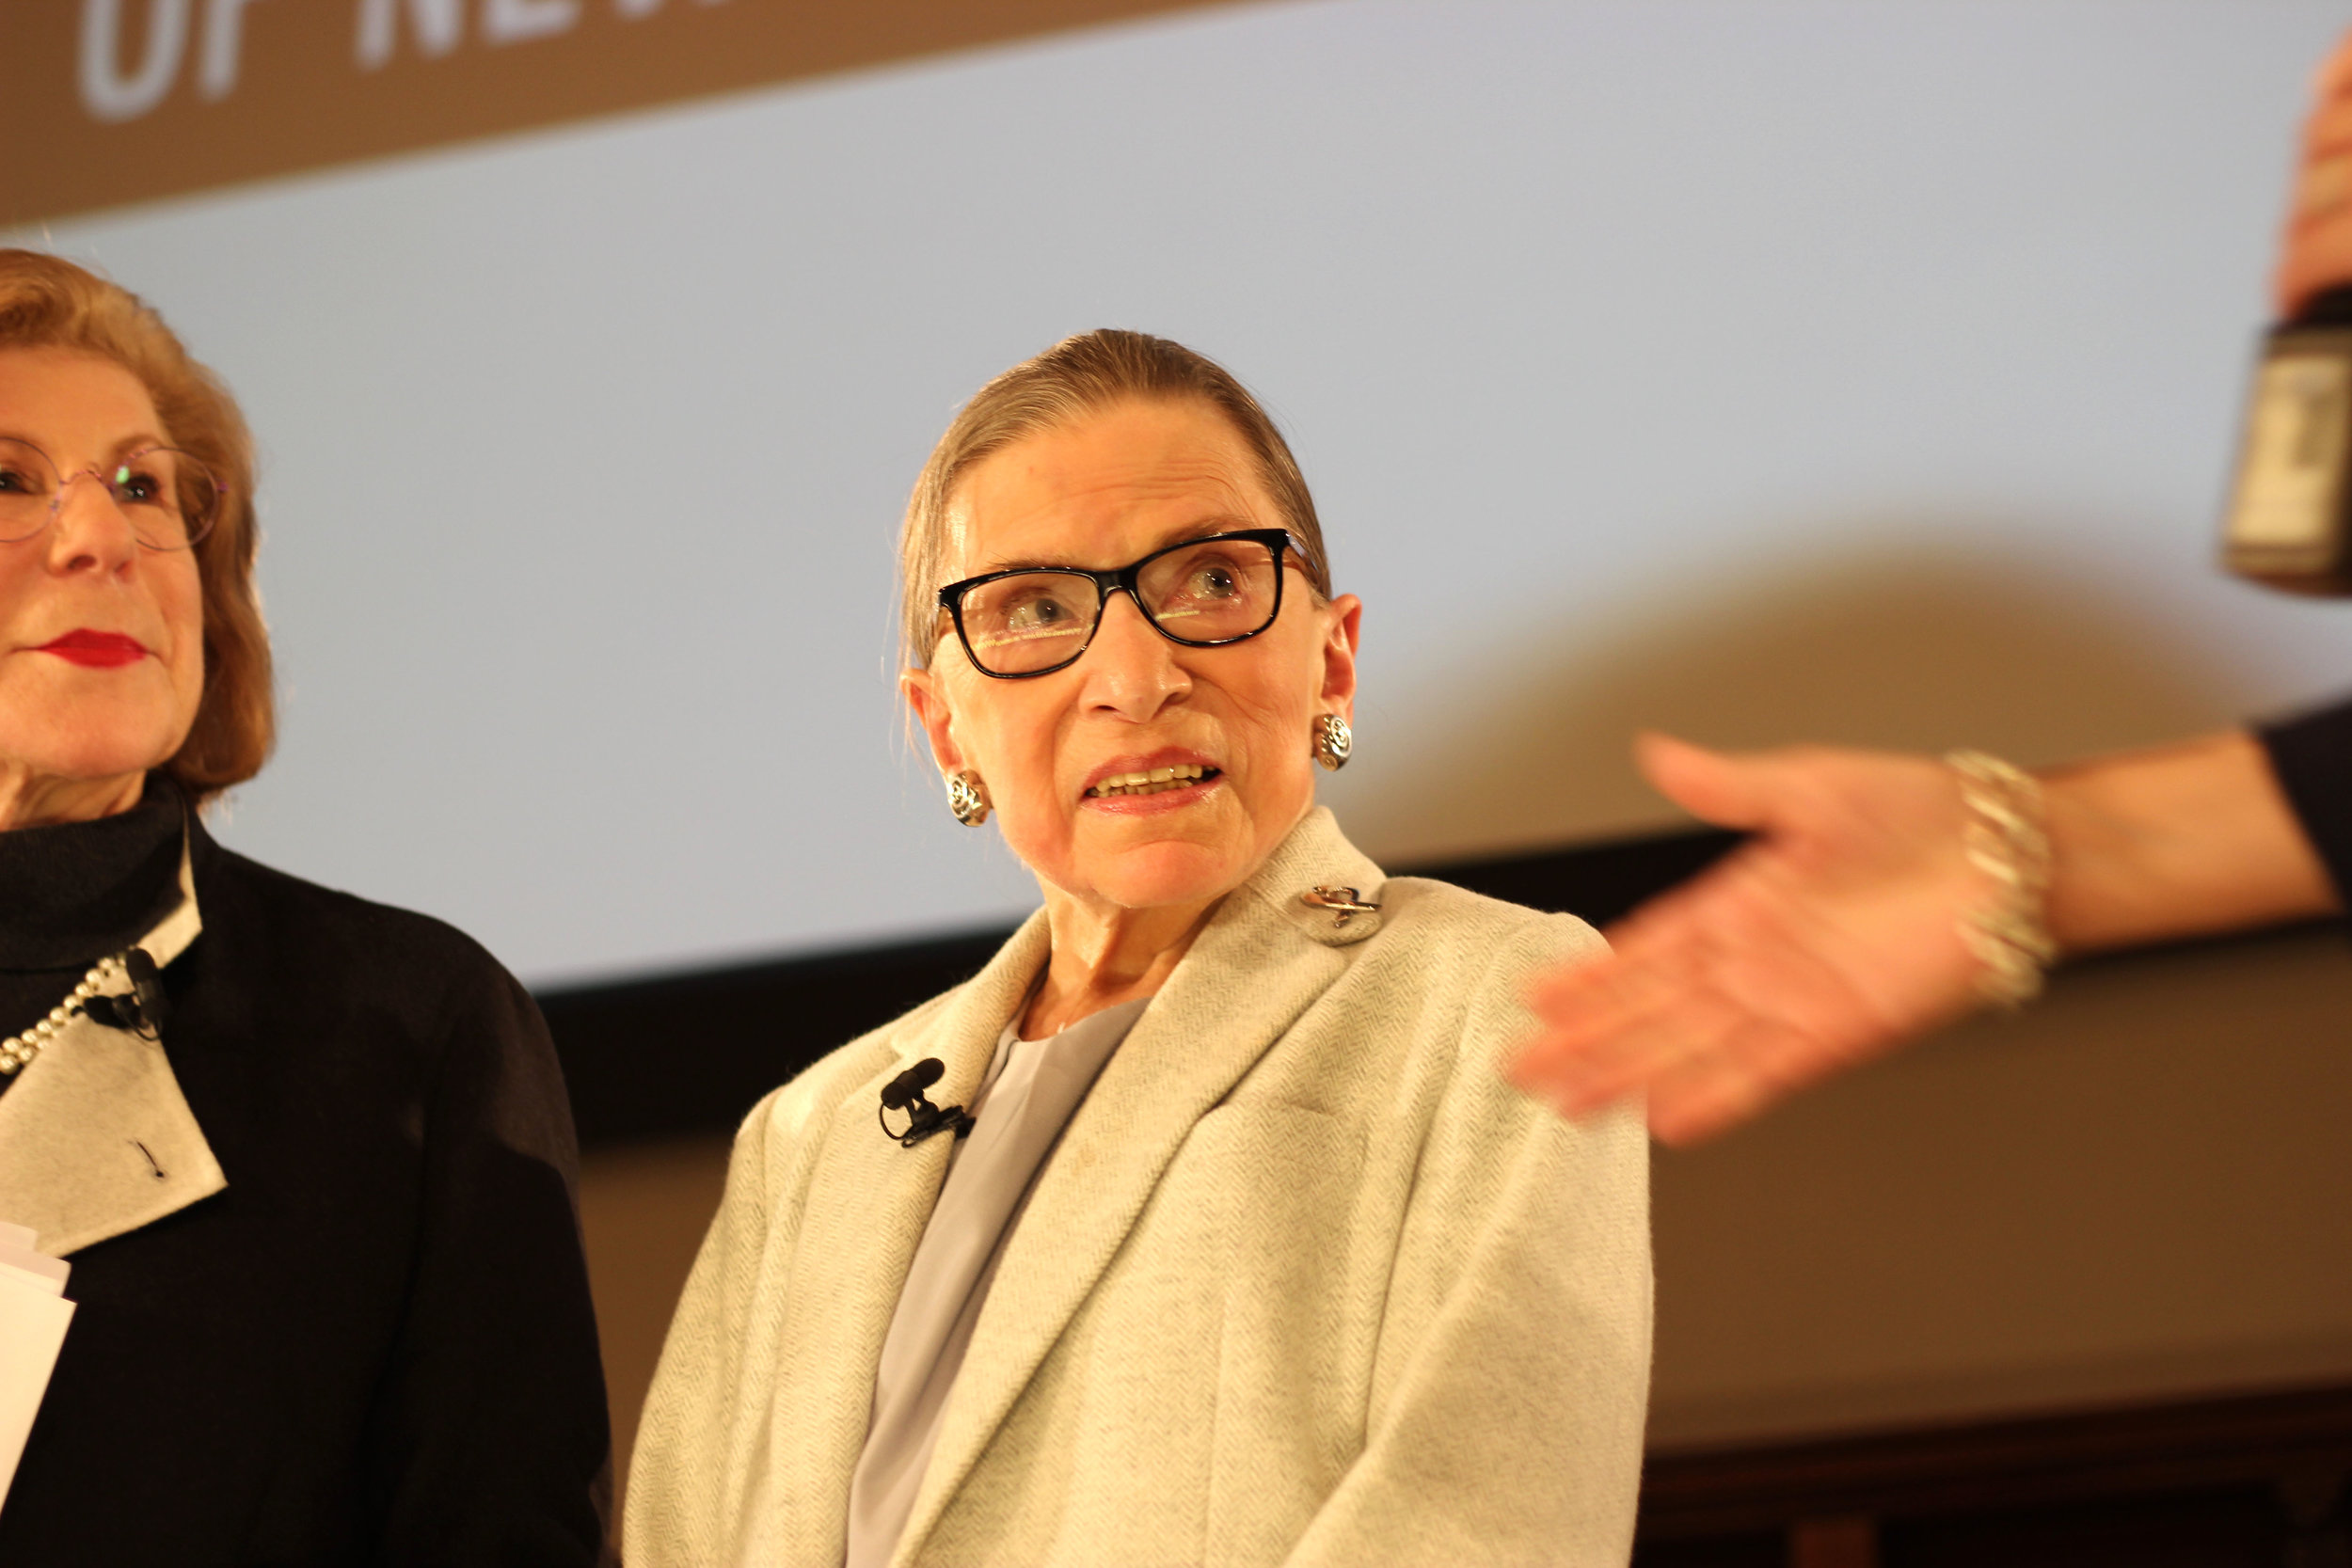 Justice Ruth Bader Ginsburg during a talk held in New York City December 2019. (Rebecca Gibian)